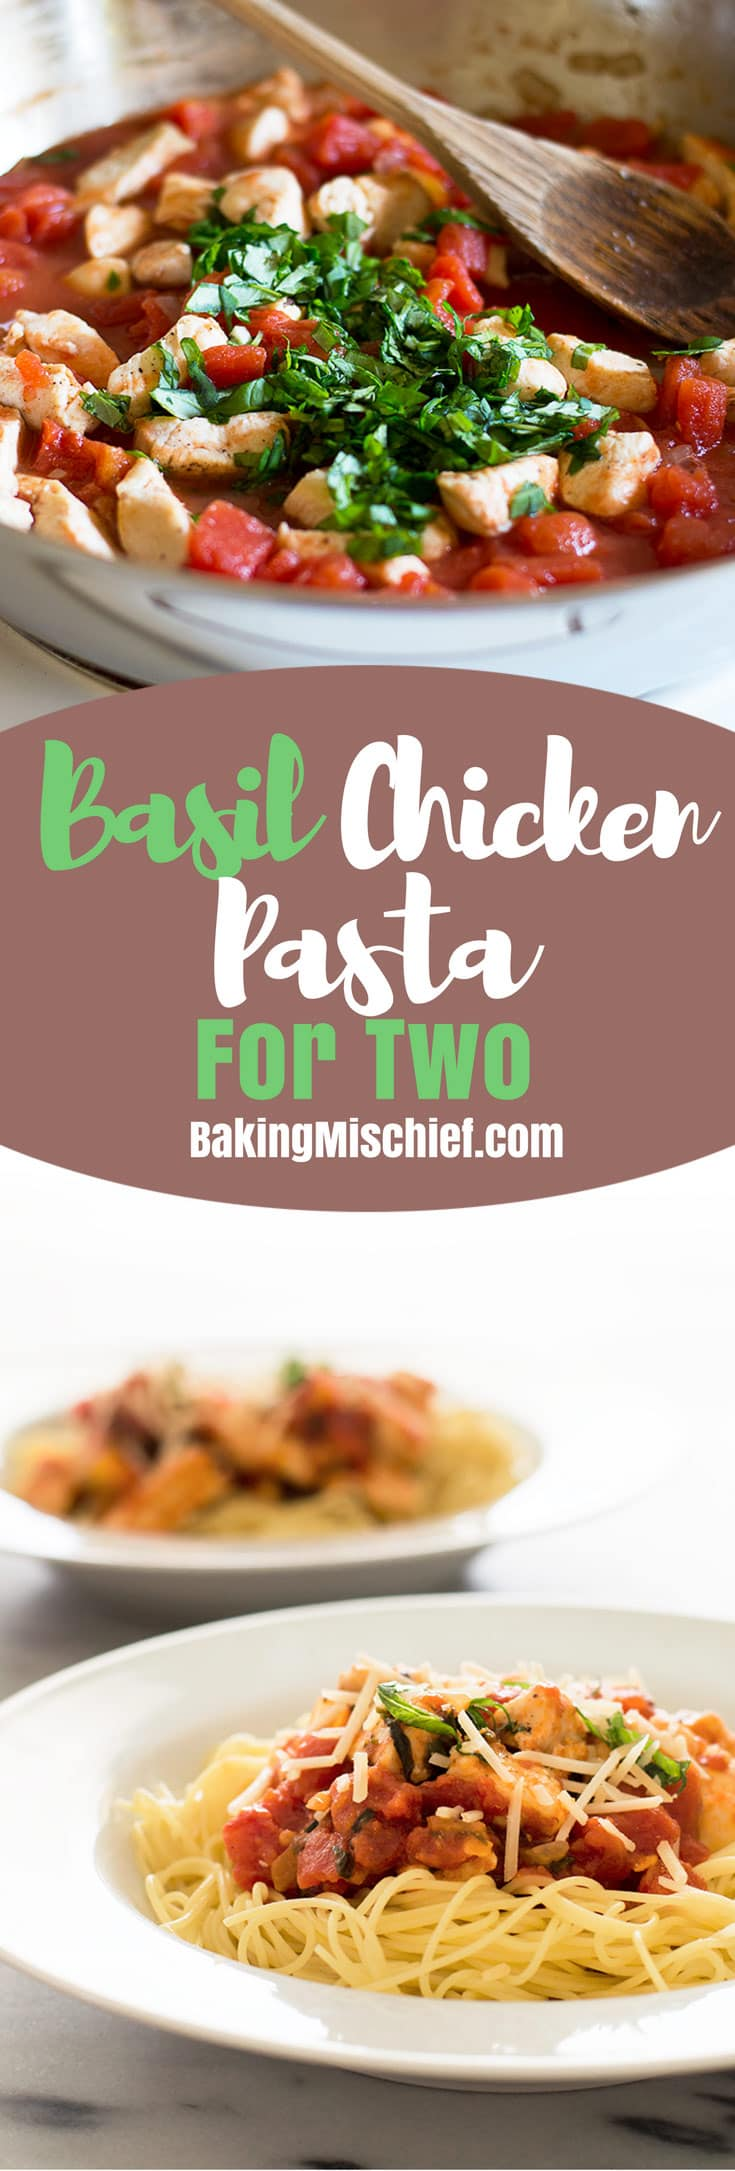 Basil Chicken Pasta is one of my favorite quick and easy weeknight meals. Recipe includes nutritional information. From BakingMischief.com